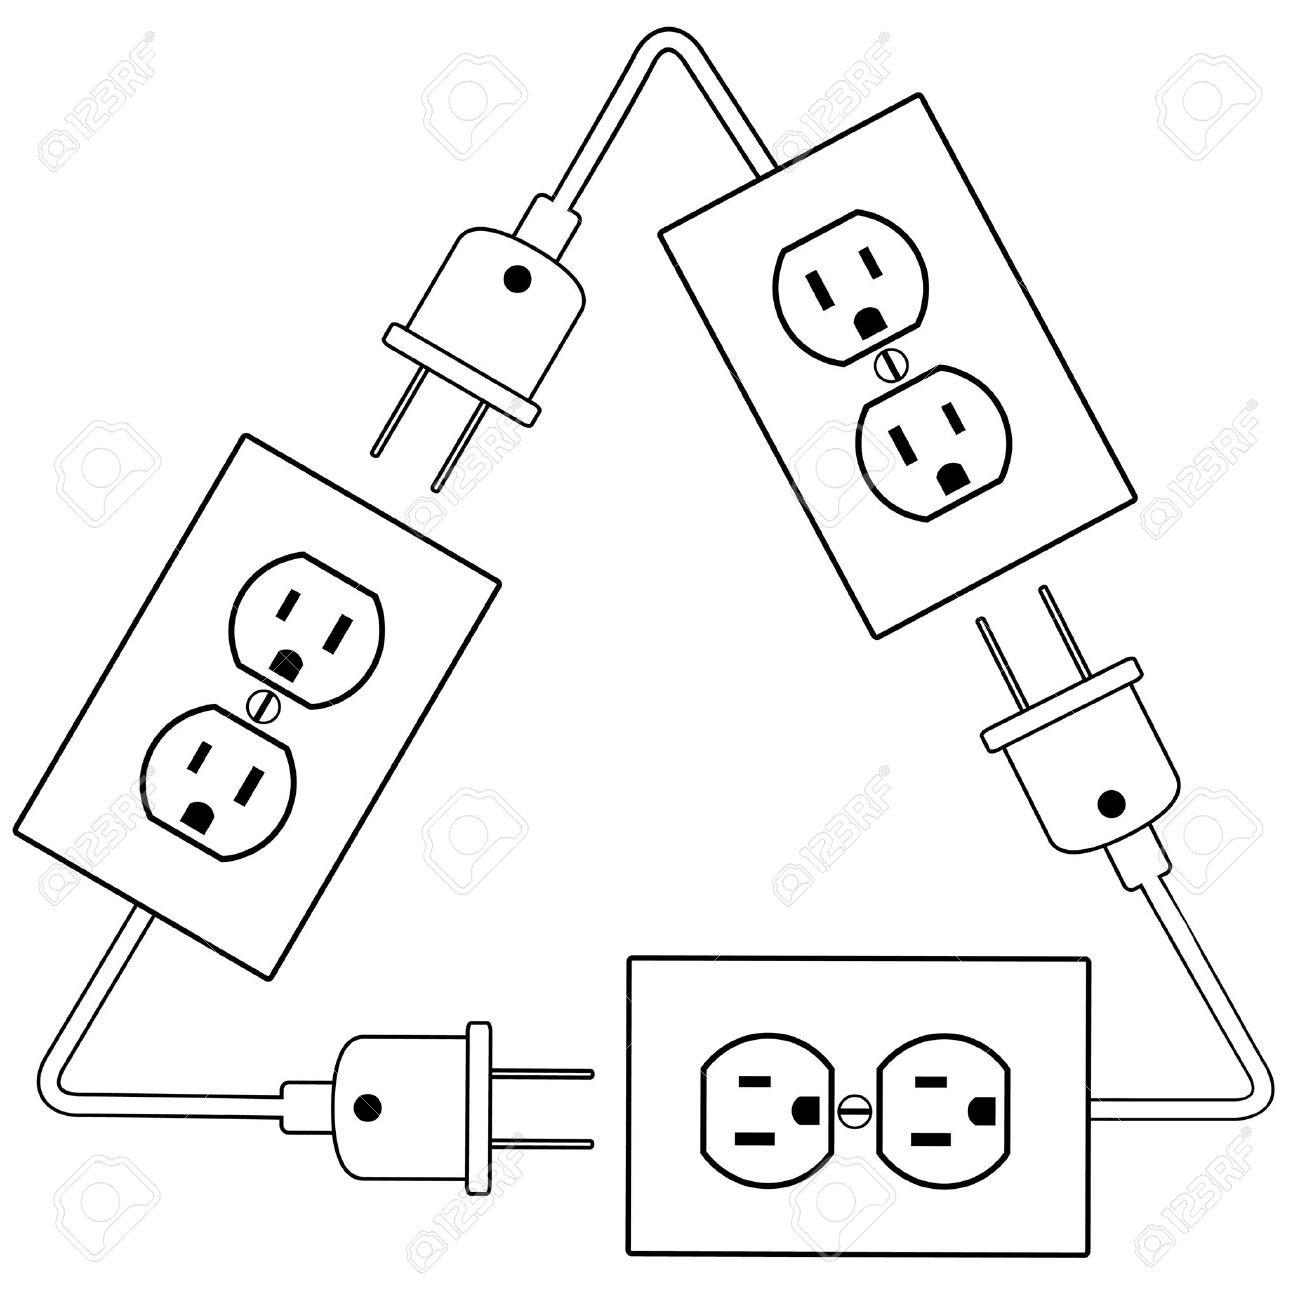 recycle electric energy symbol as electrical outlets plugs and rh 123rf com power outlet drawing symbol electrical outlet drawing autocad blocks